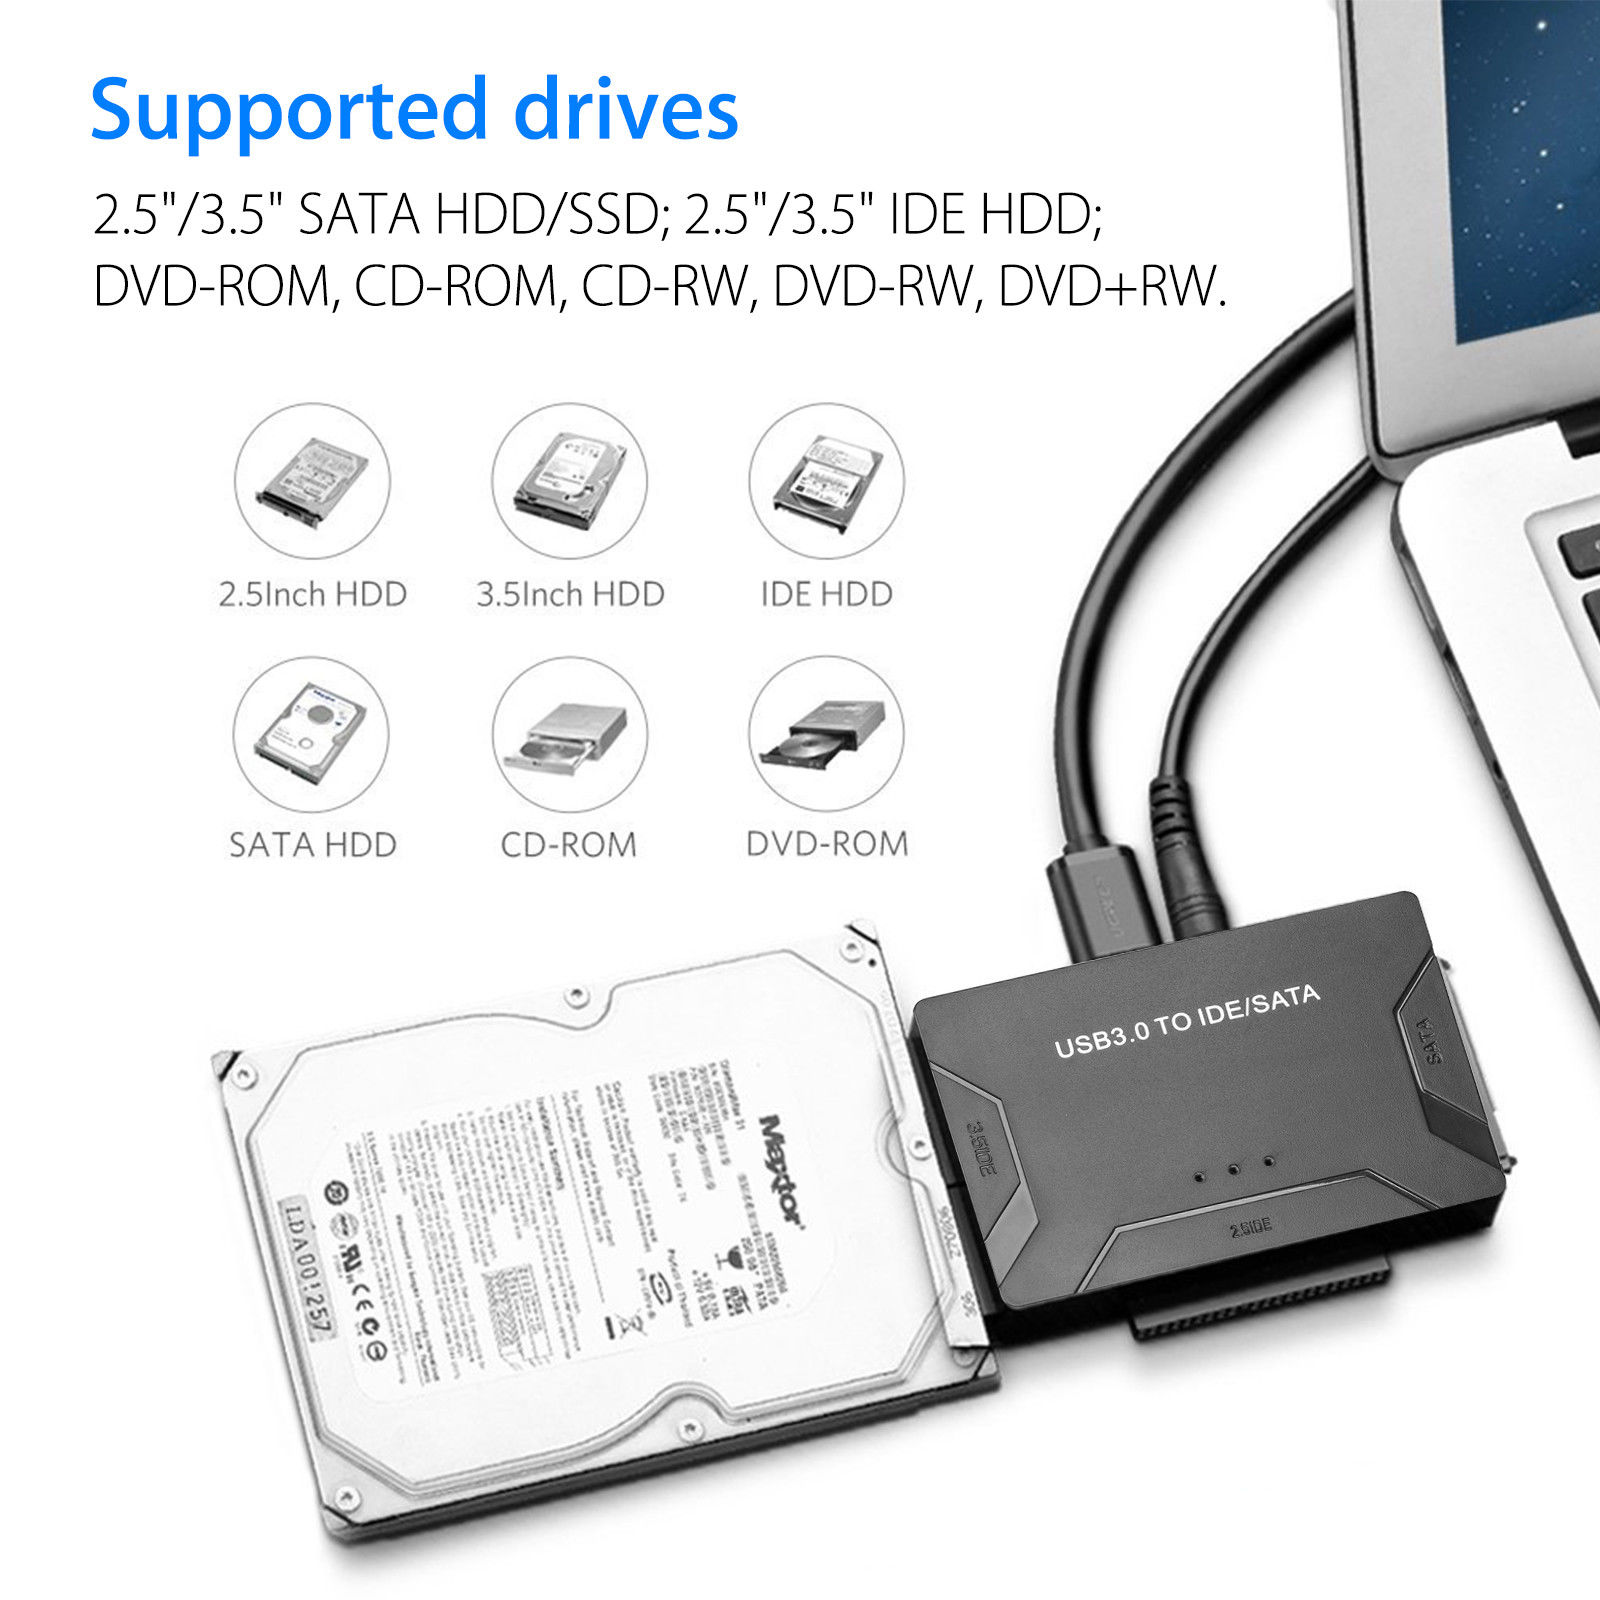 USB 3.0 to IDE + SATA HDD SSD Hard Drive Converter Cable Adapter for 2.5 3.5inch Hard Disk